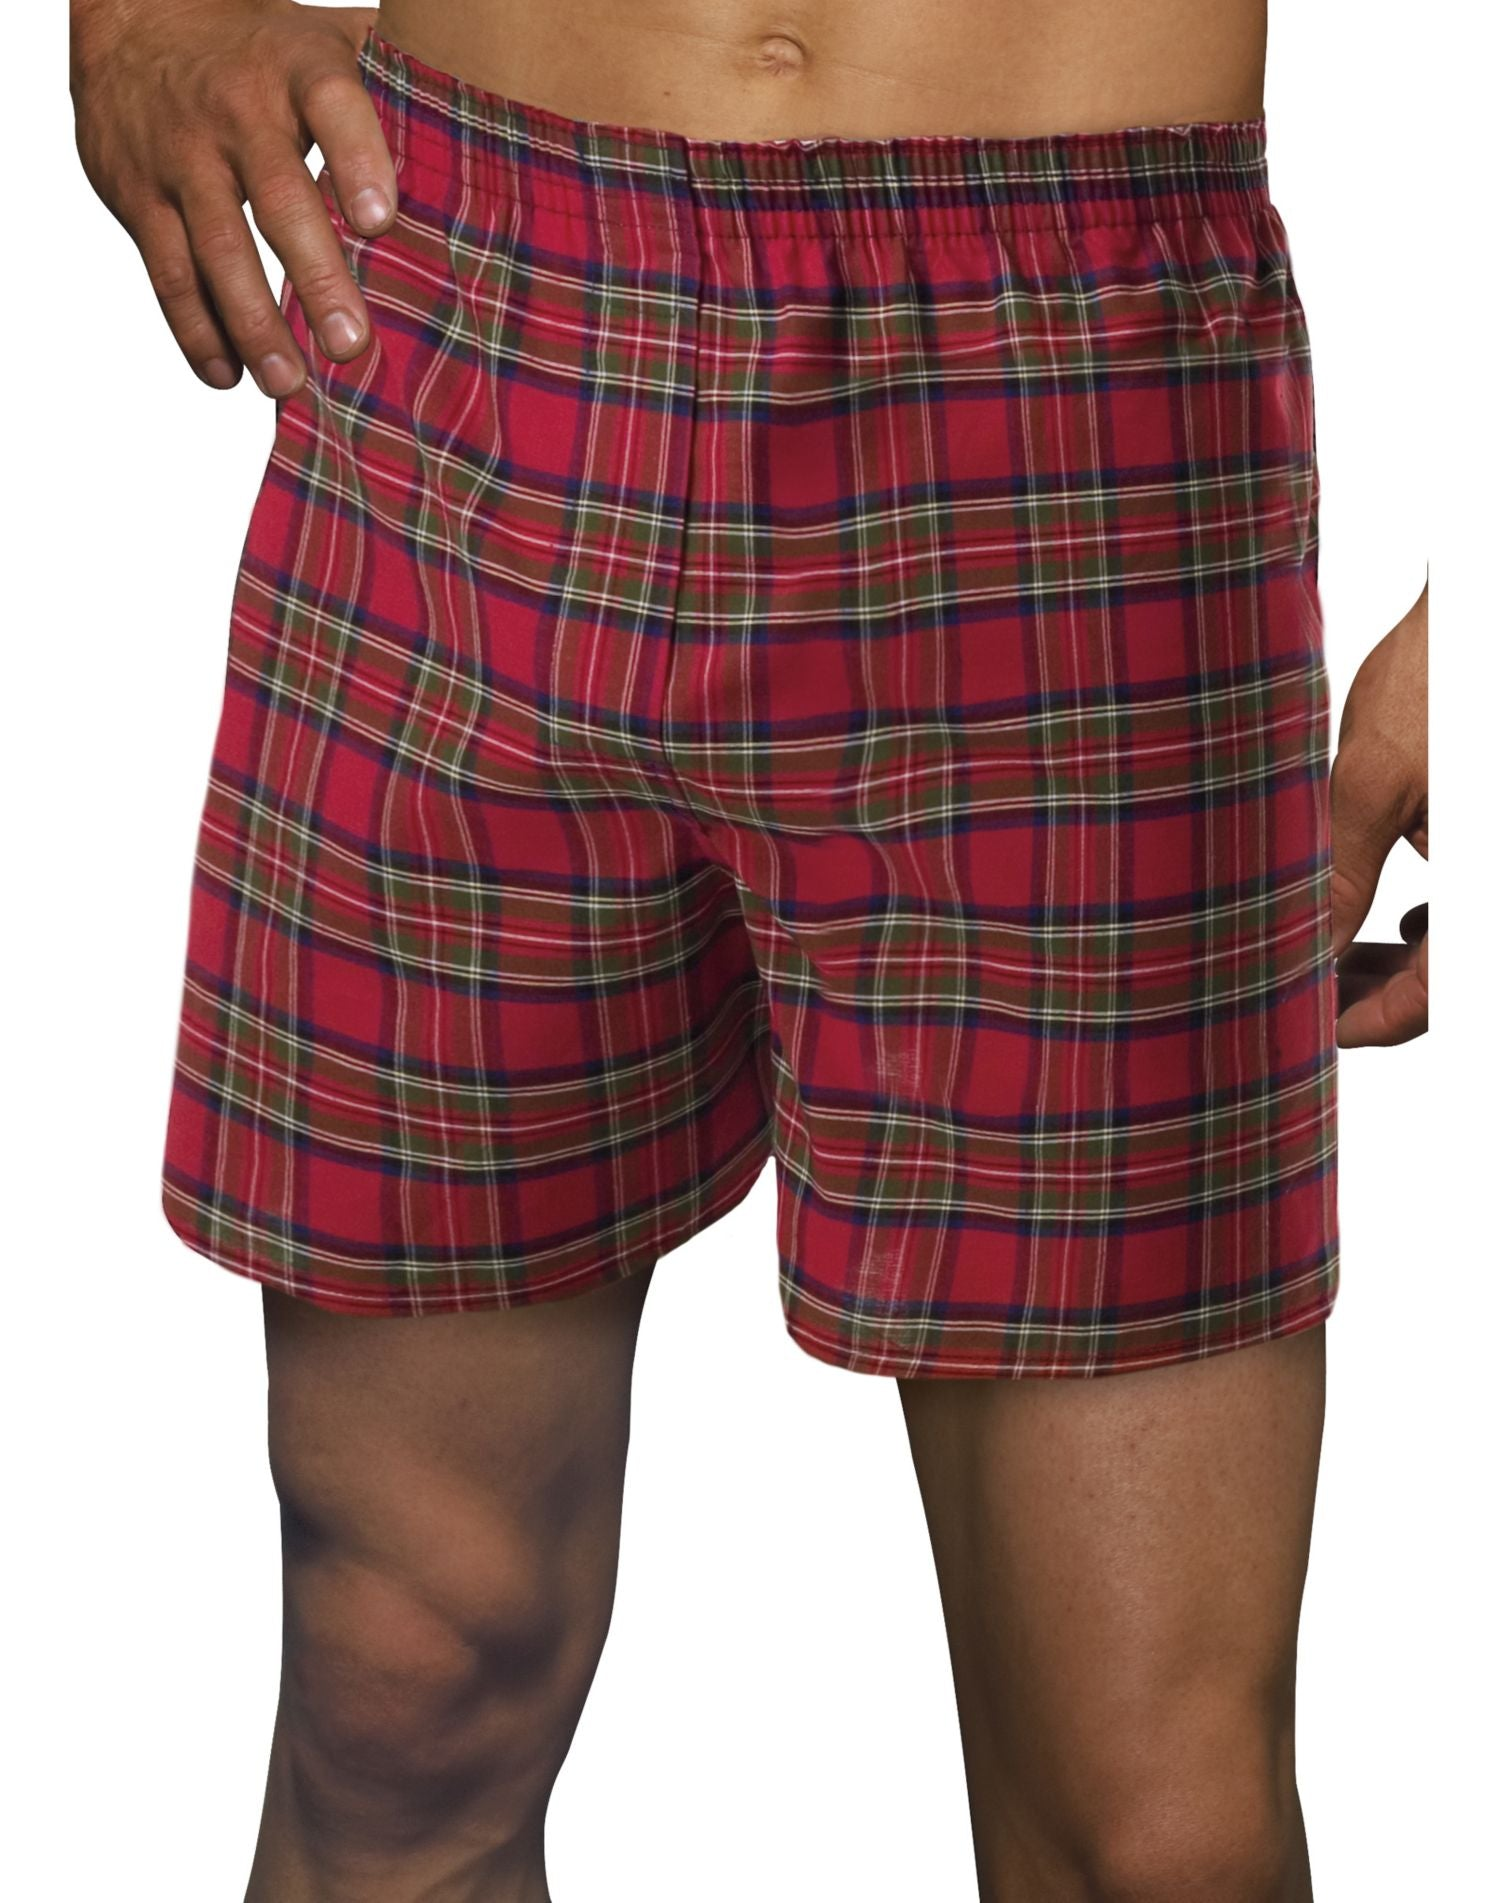 c9c473ebc Hanes Classics BIG Men s Tartan Boxers with Comfort Flex Waistband 2-Pack